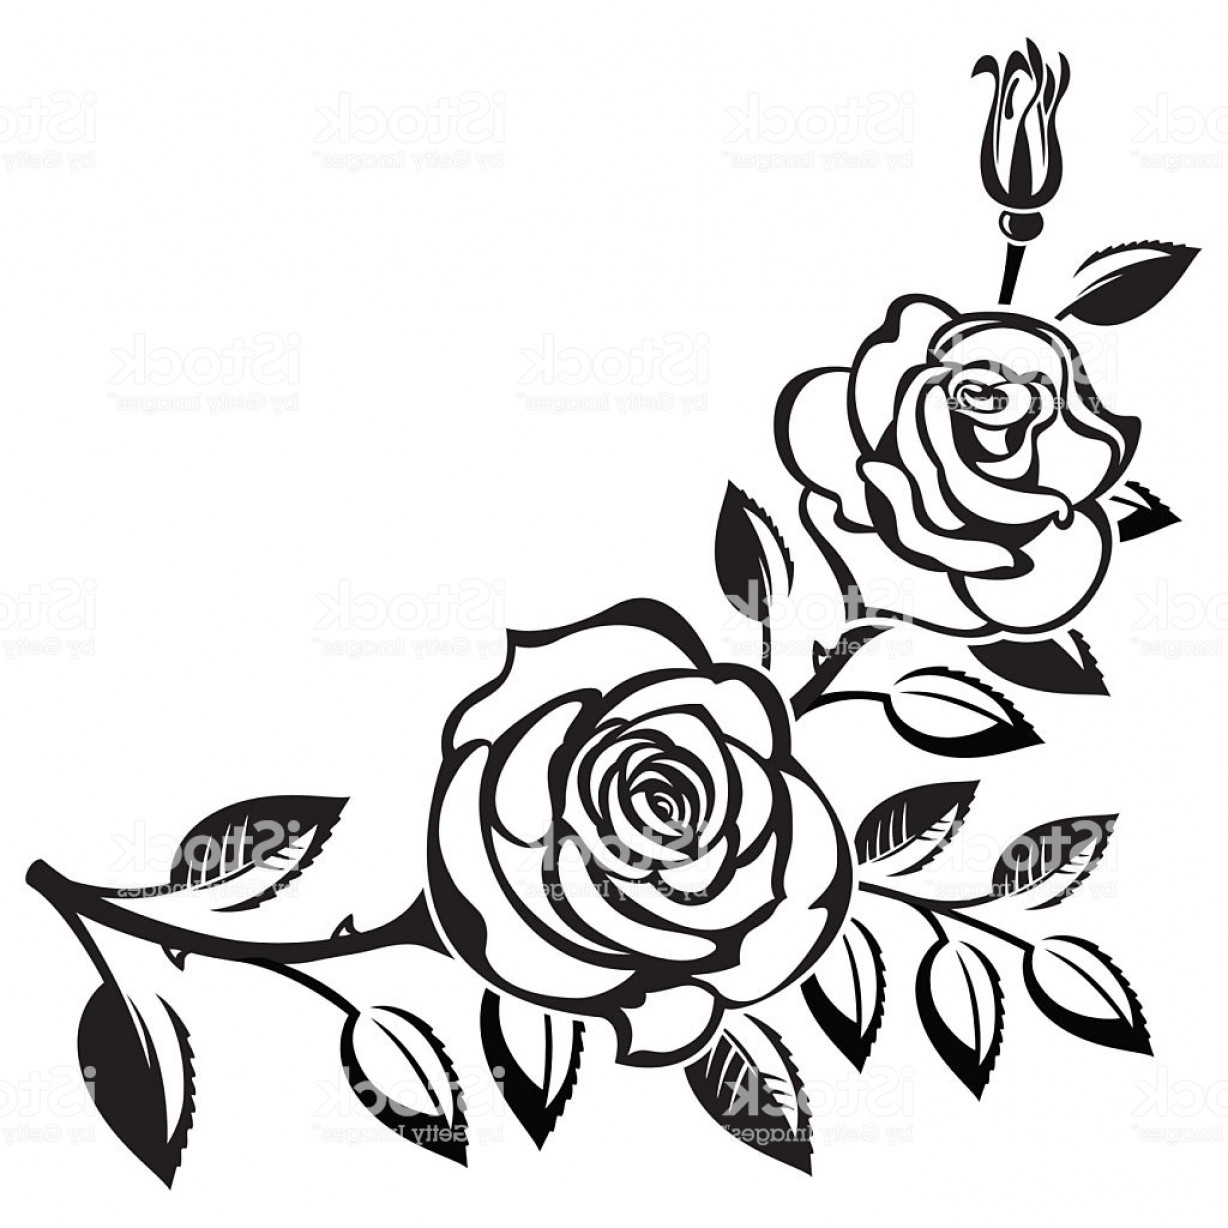 1228x1228 Black Branch Of Roses Drawing On White Background Gm Soidergi